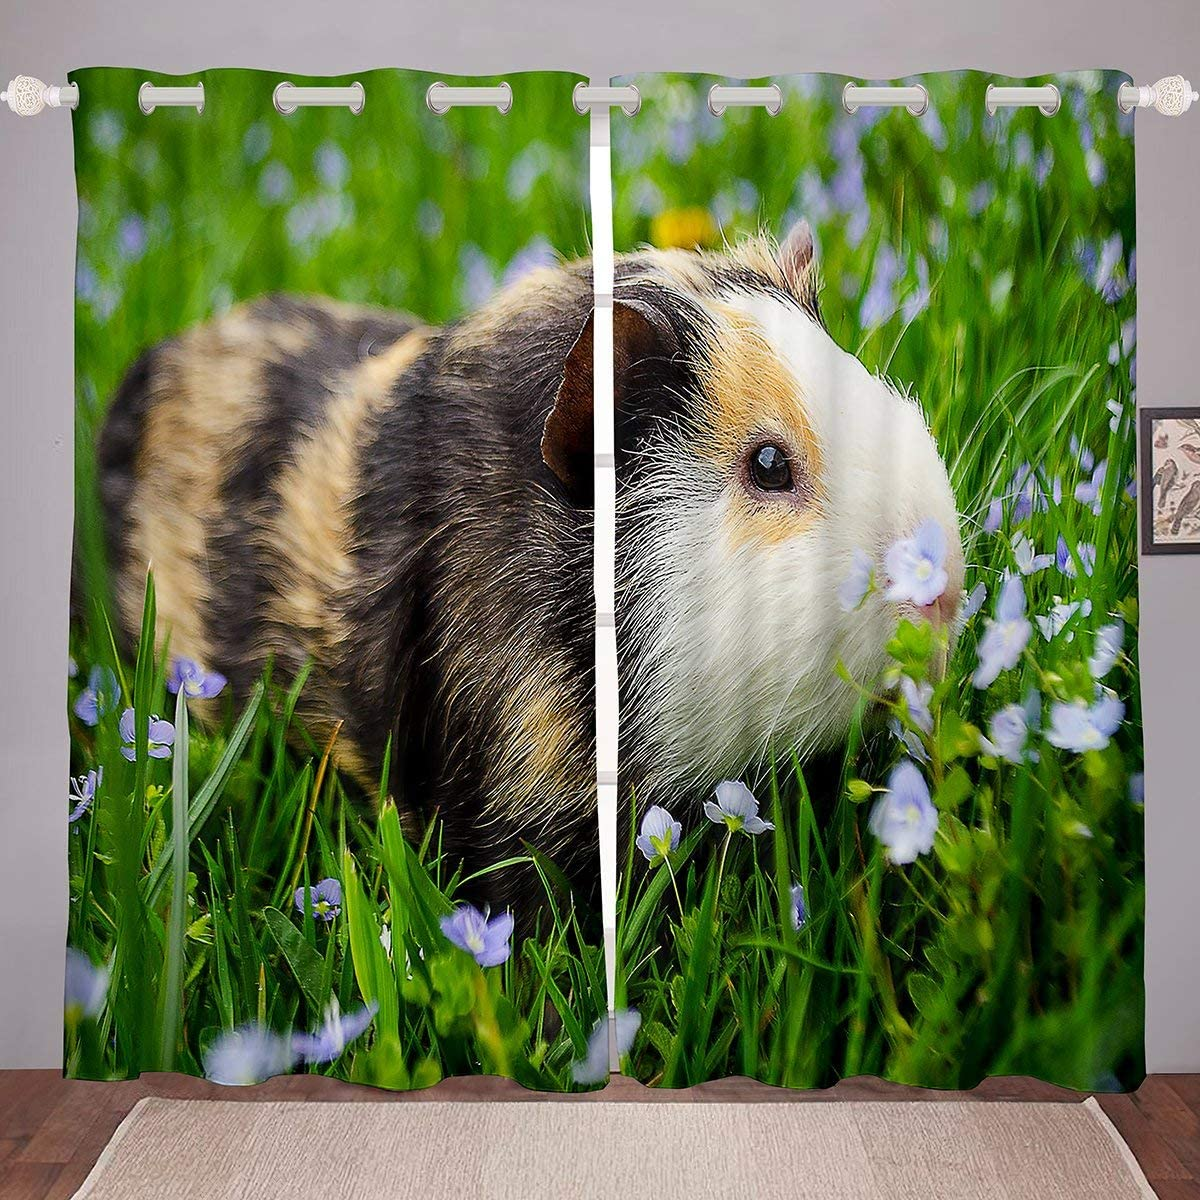 """Guinea Pig Curtain Kids Pet Animal Theme Window Drapes Blackout Cute Cavy Pattern Window Treatments for Boys Teens Girls Bedroom Decor Green Garden Nature Window Curtains Rodent Mouse 84""""x63"""""""